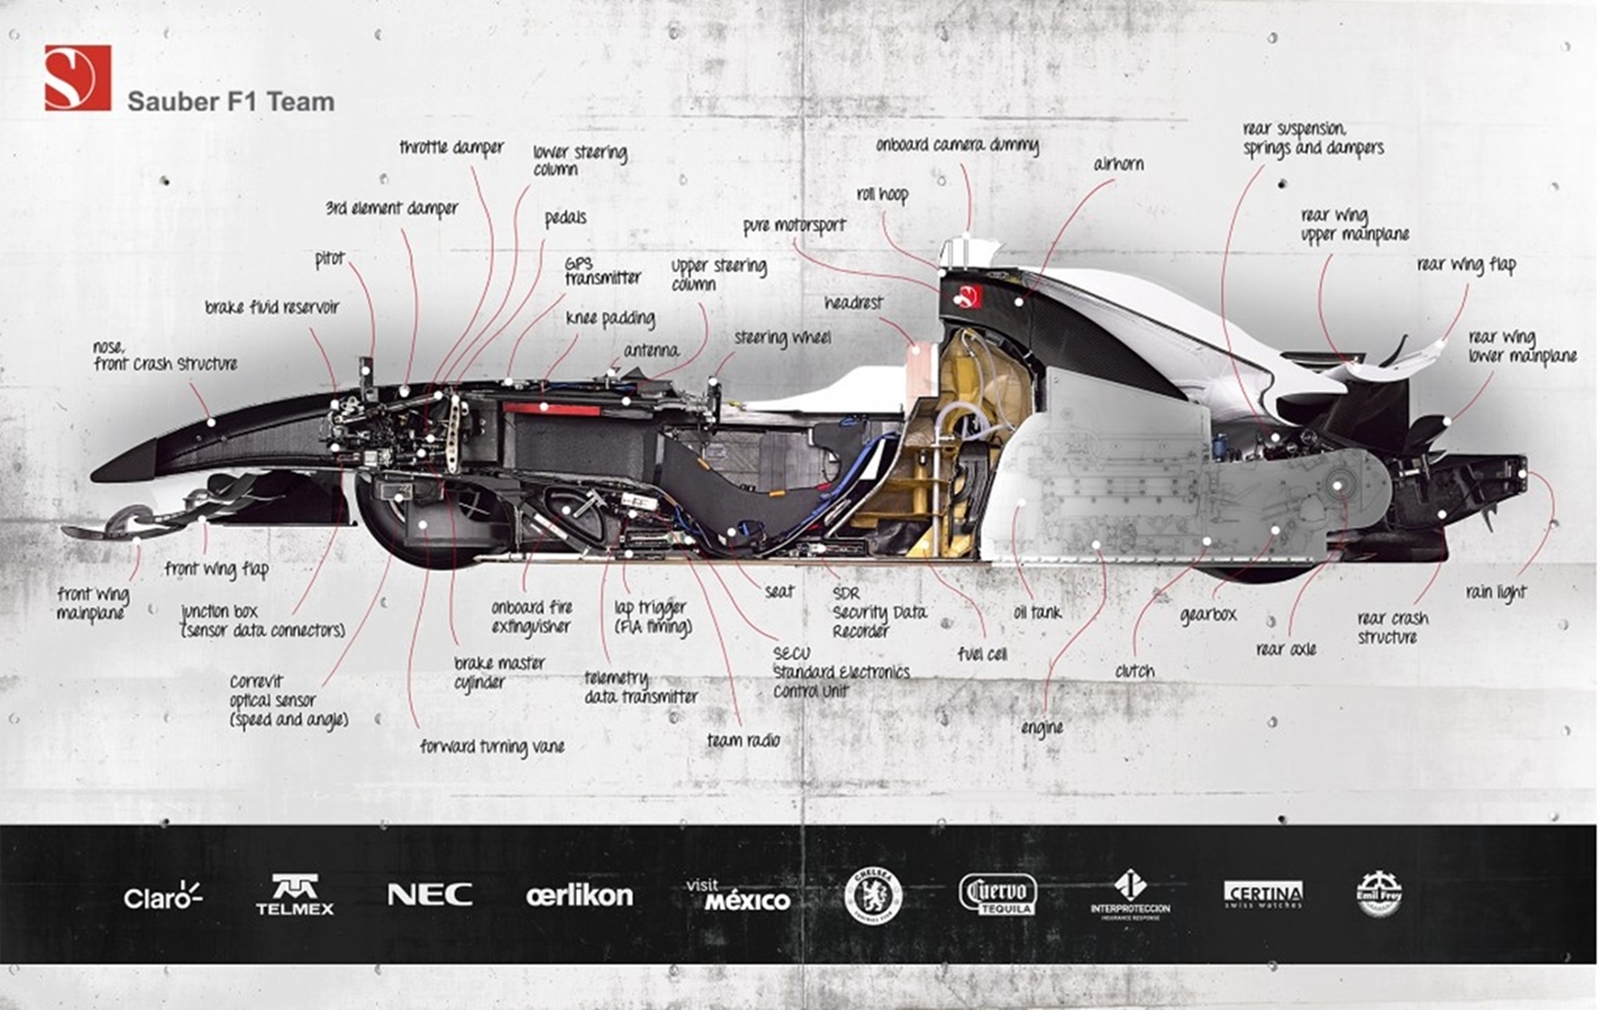 hight resolution of sauber f1 team race car cutaway diagram engine is blanked out but is shown in the excellent detailed video link in comments 1600x1010